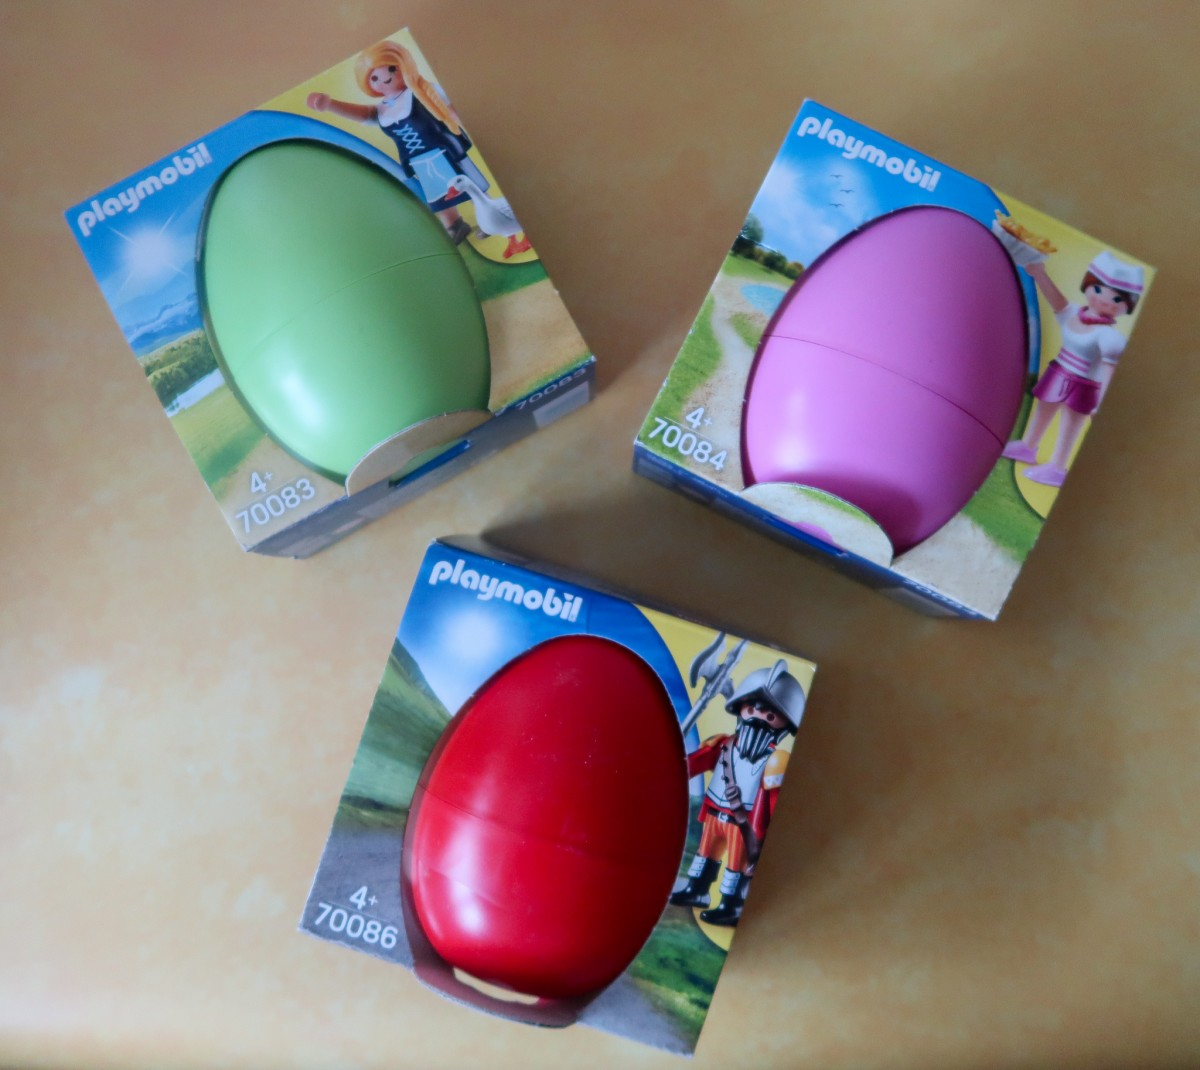 Playmobil Easter Eggs - green, pink and red!